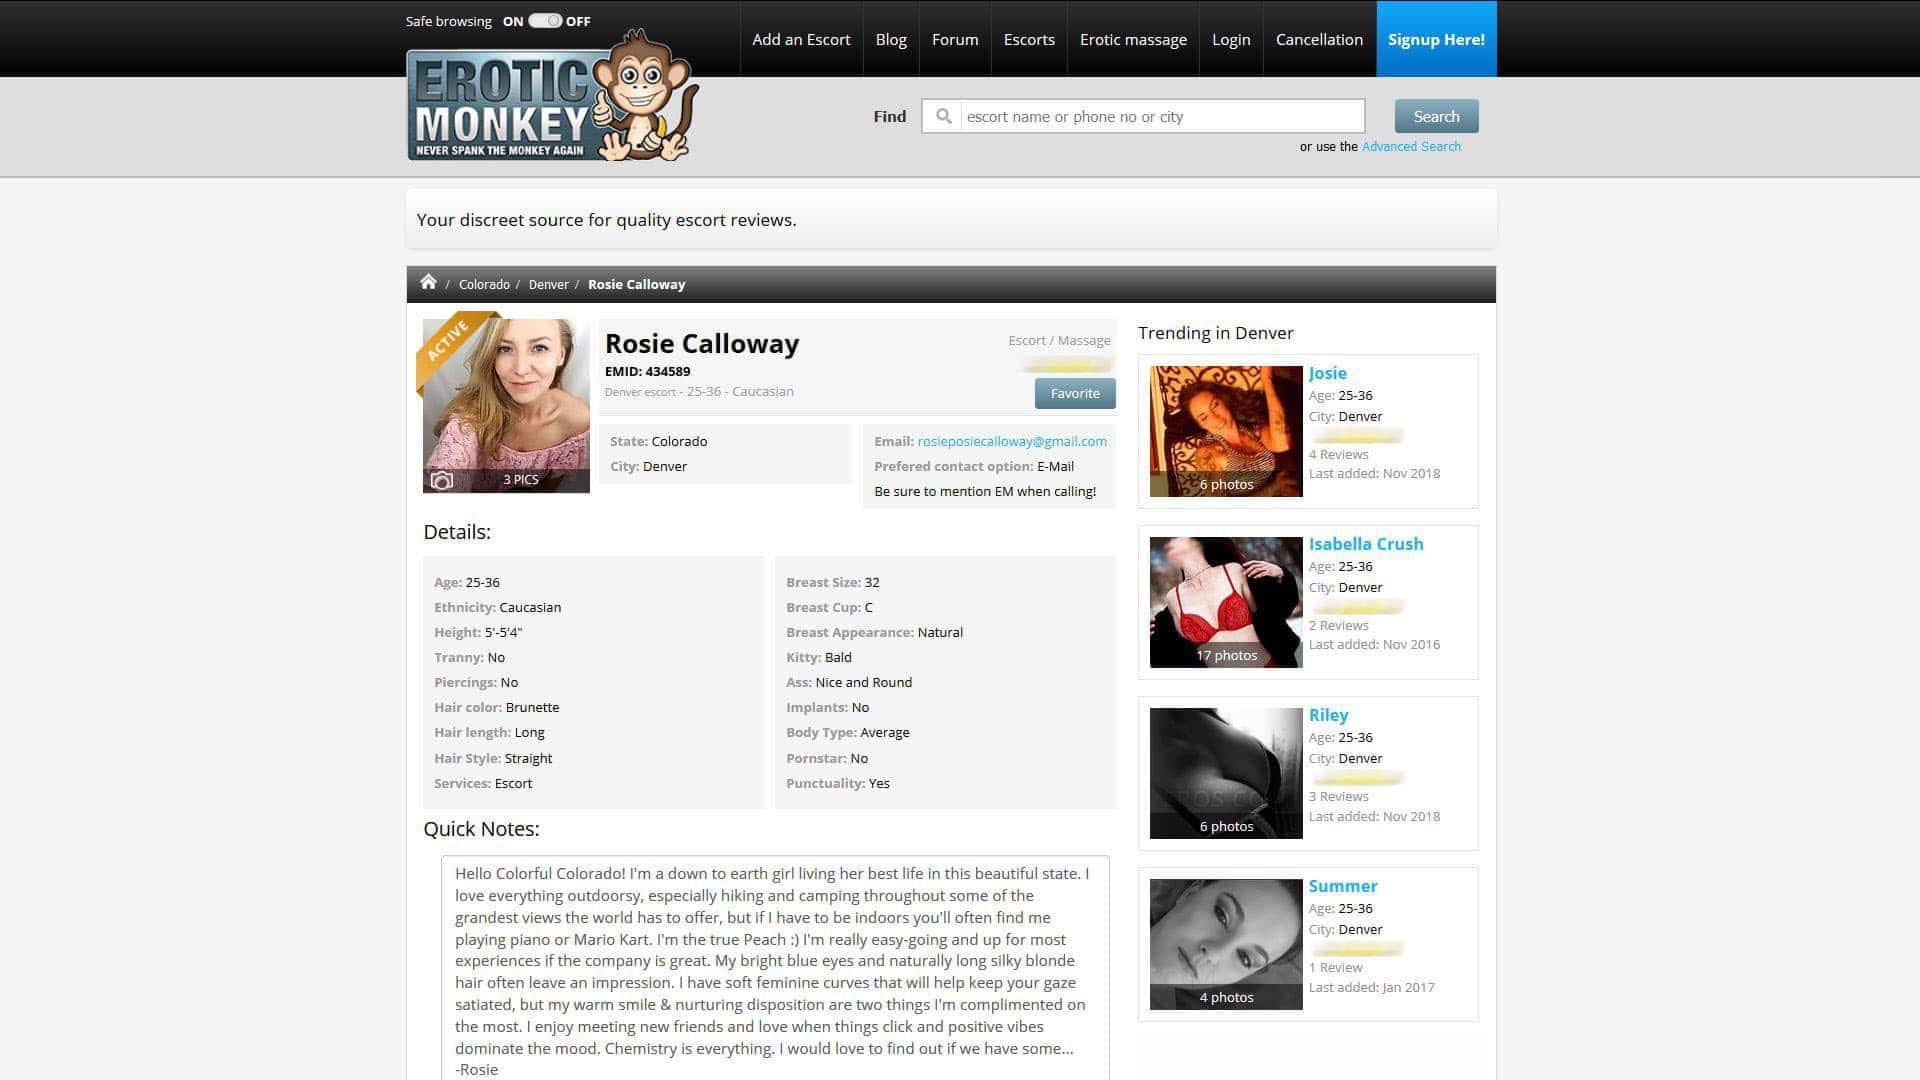 Erotic Monkey Rosie Calloway